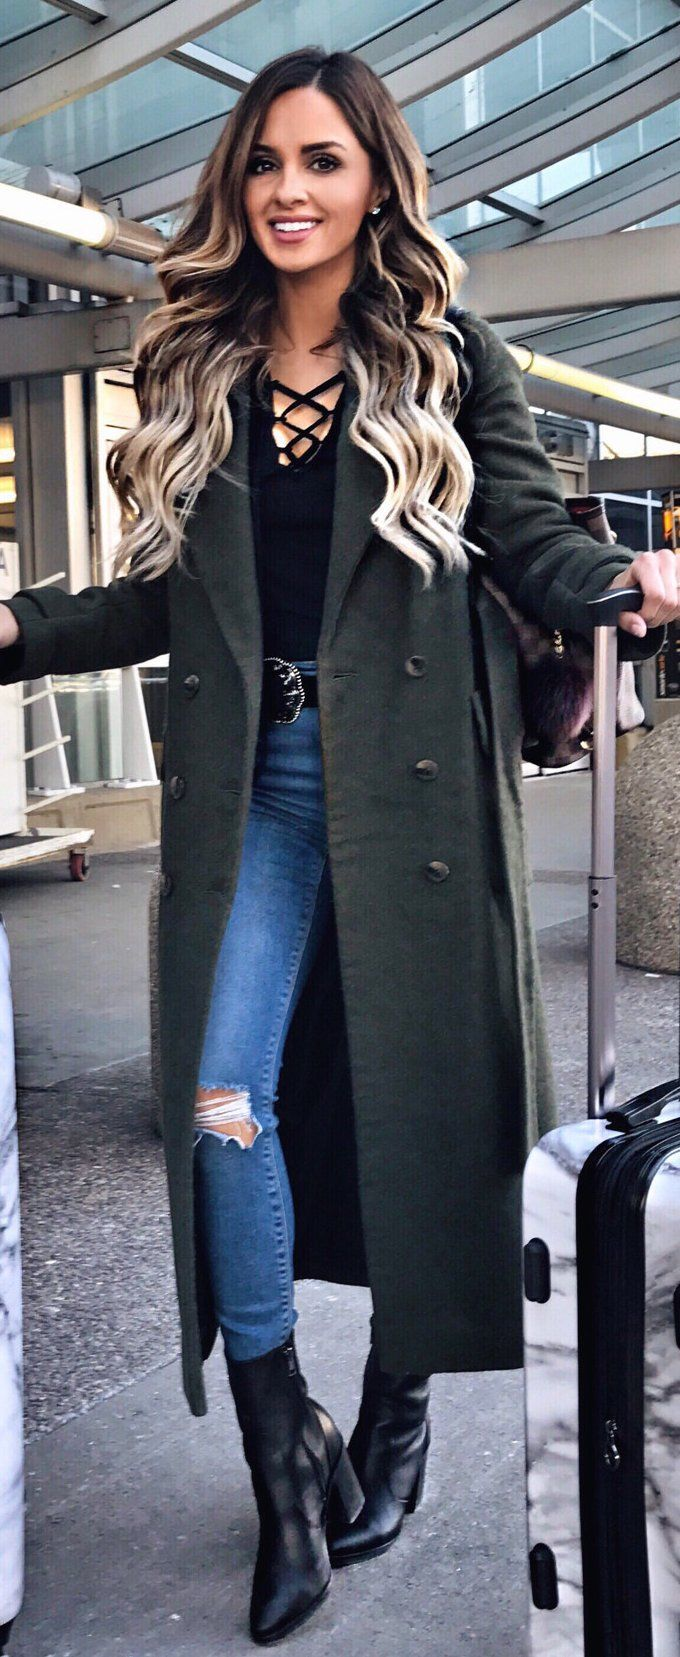 #winter #outfits / Green Coat / Black Laced Up Top / Ripped Skinny Jeans / Black Leather Booties